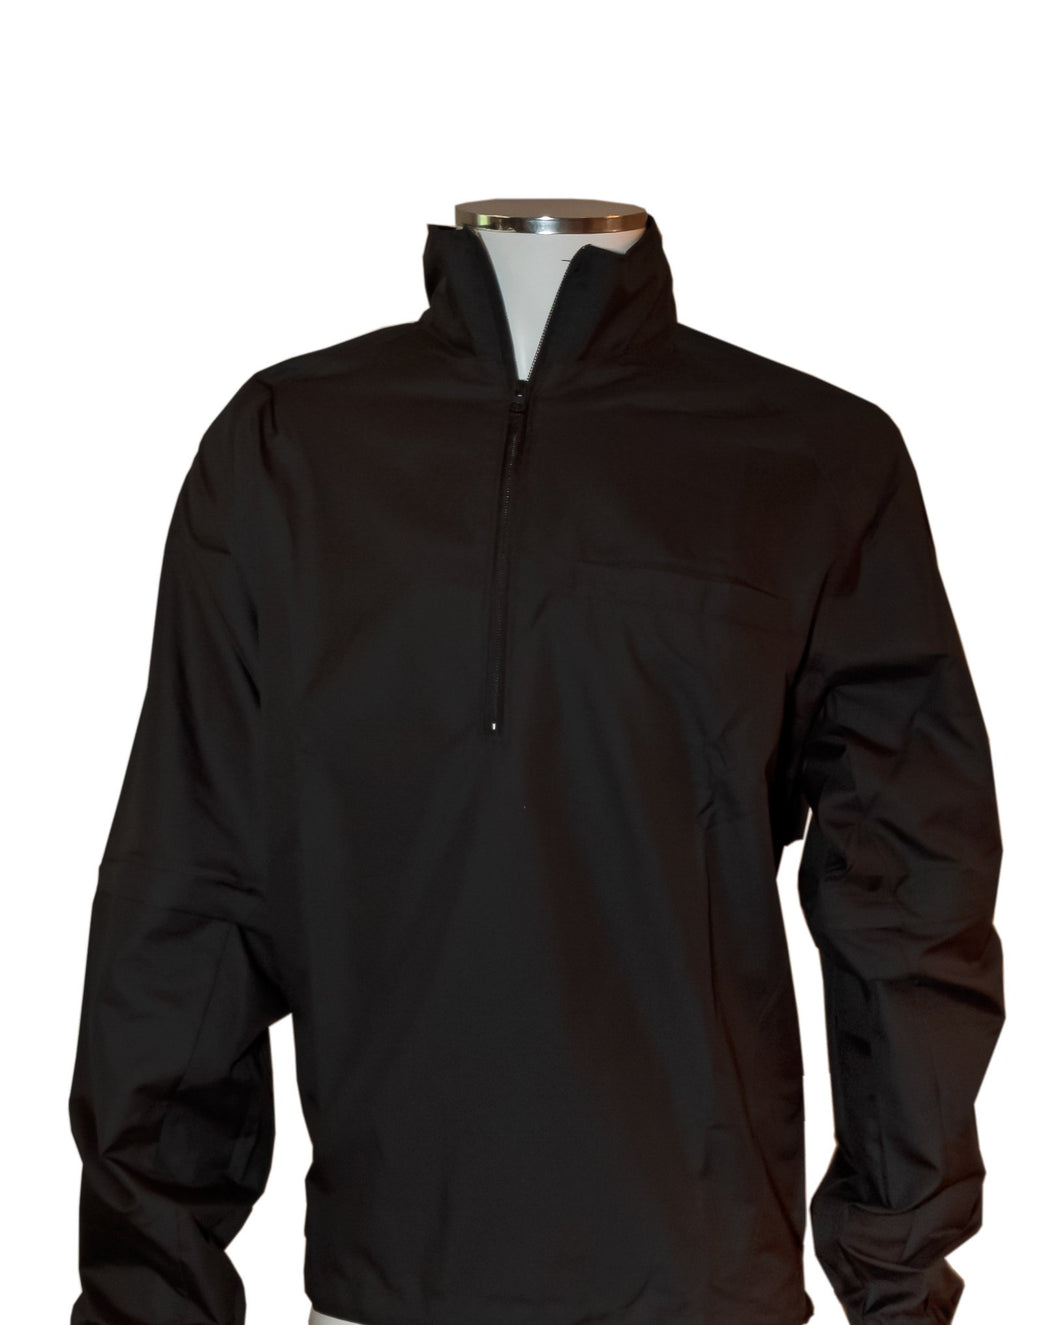 Convertible Umpire Jacket with Removable Sleeves (Clearance) Version 1.0 - Officials Depot